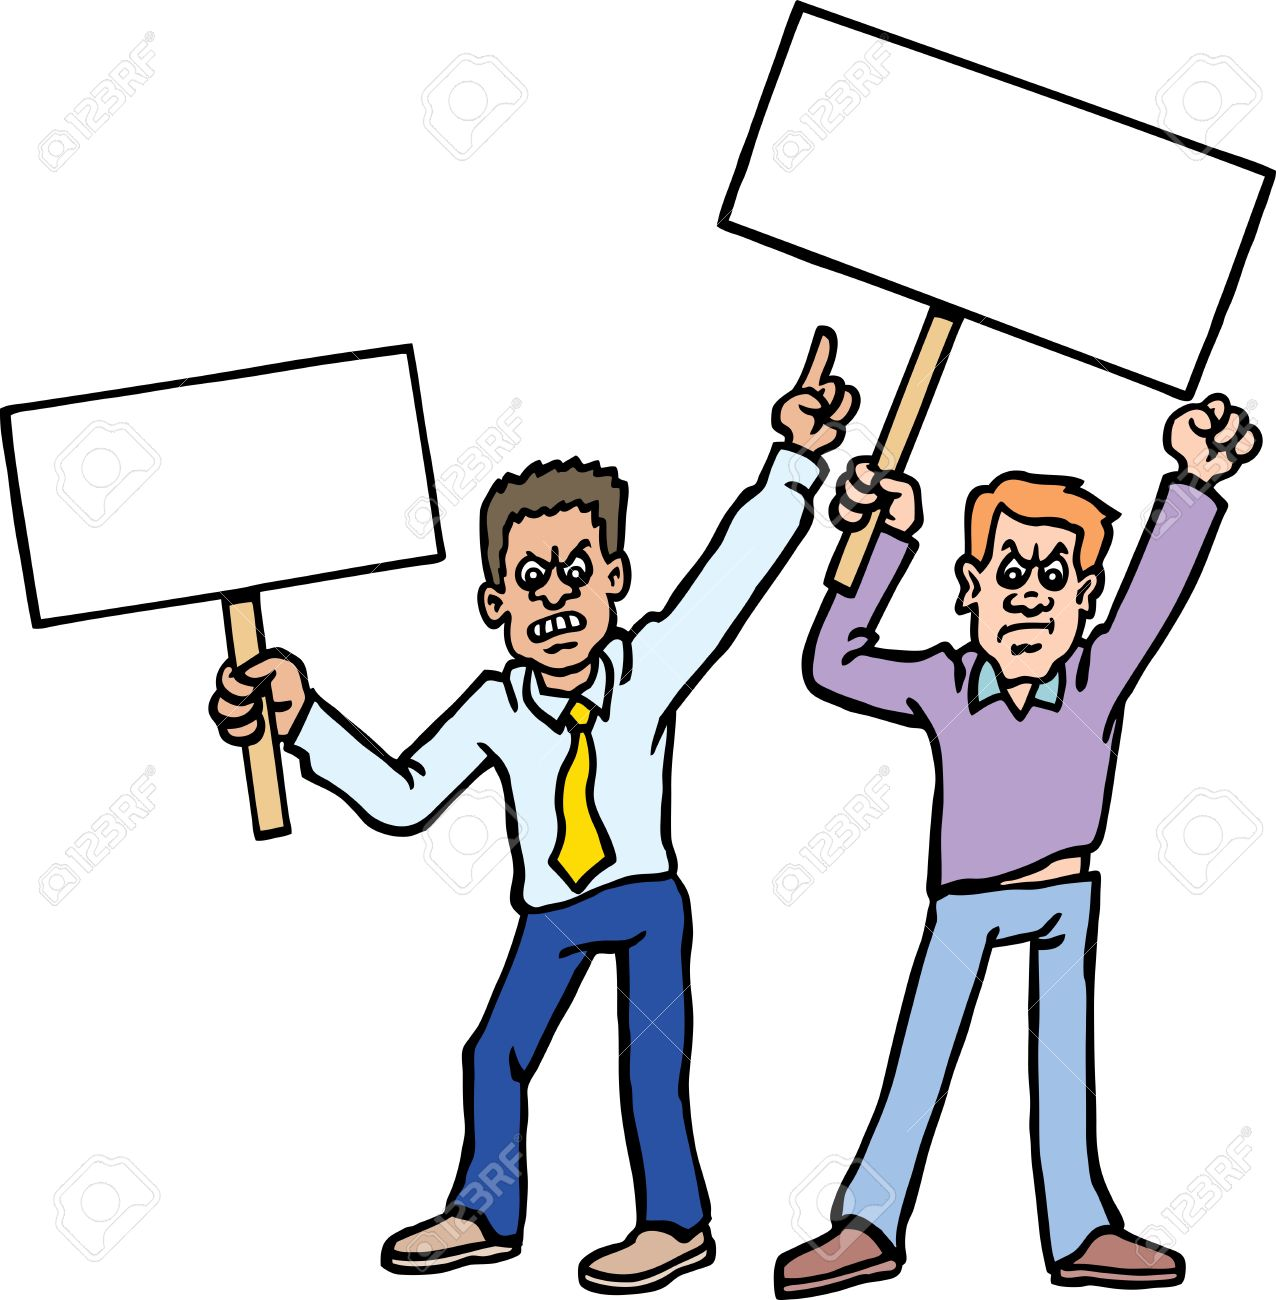 447 Protesters Cliparts, Stock Vector And Royalty Free Protesters.